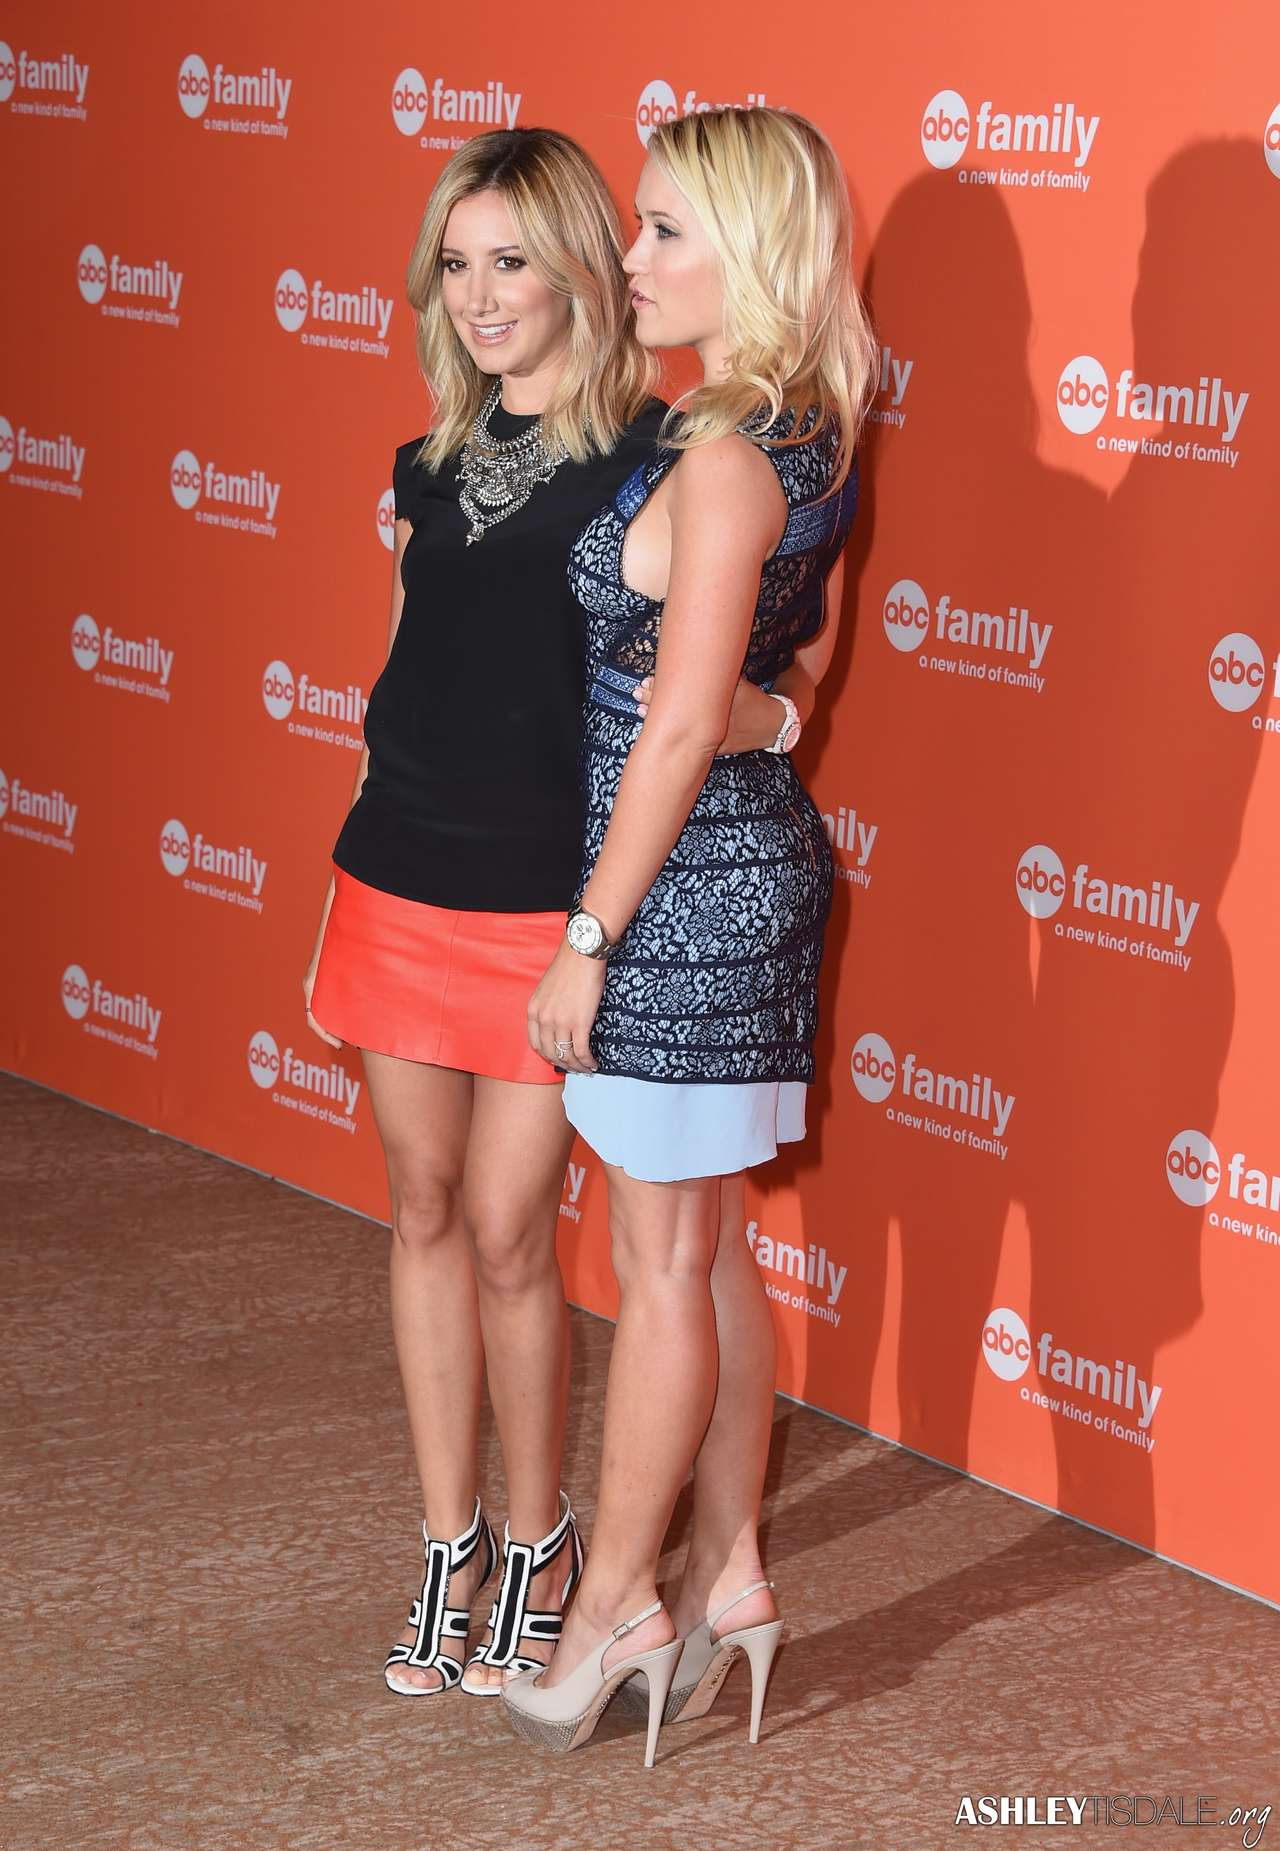 Ashley Tisdale 2014 : Ashley Tisdale at 2014 Disney ABC TCA Summer Press Tour in Beverly Hills -08